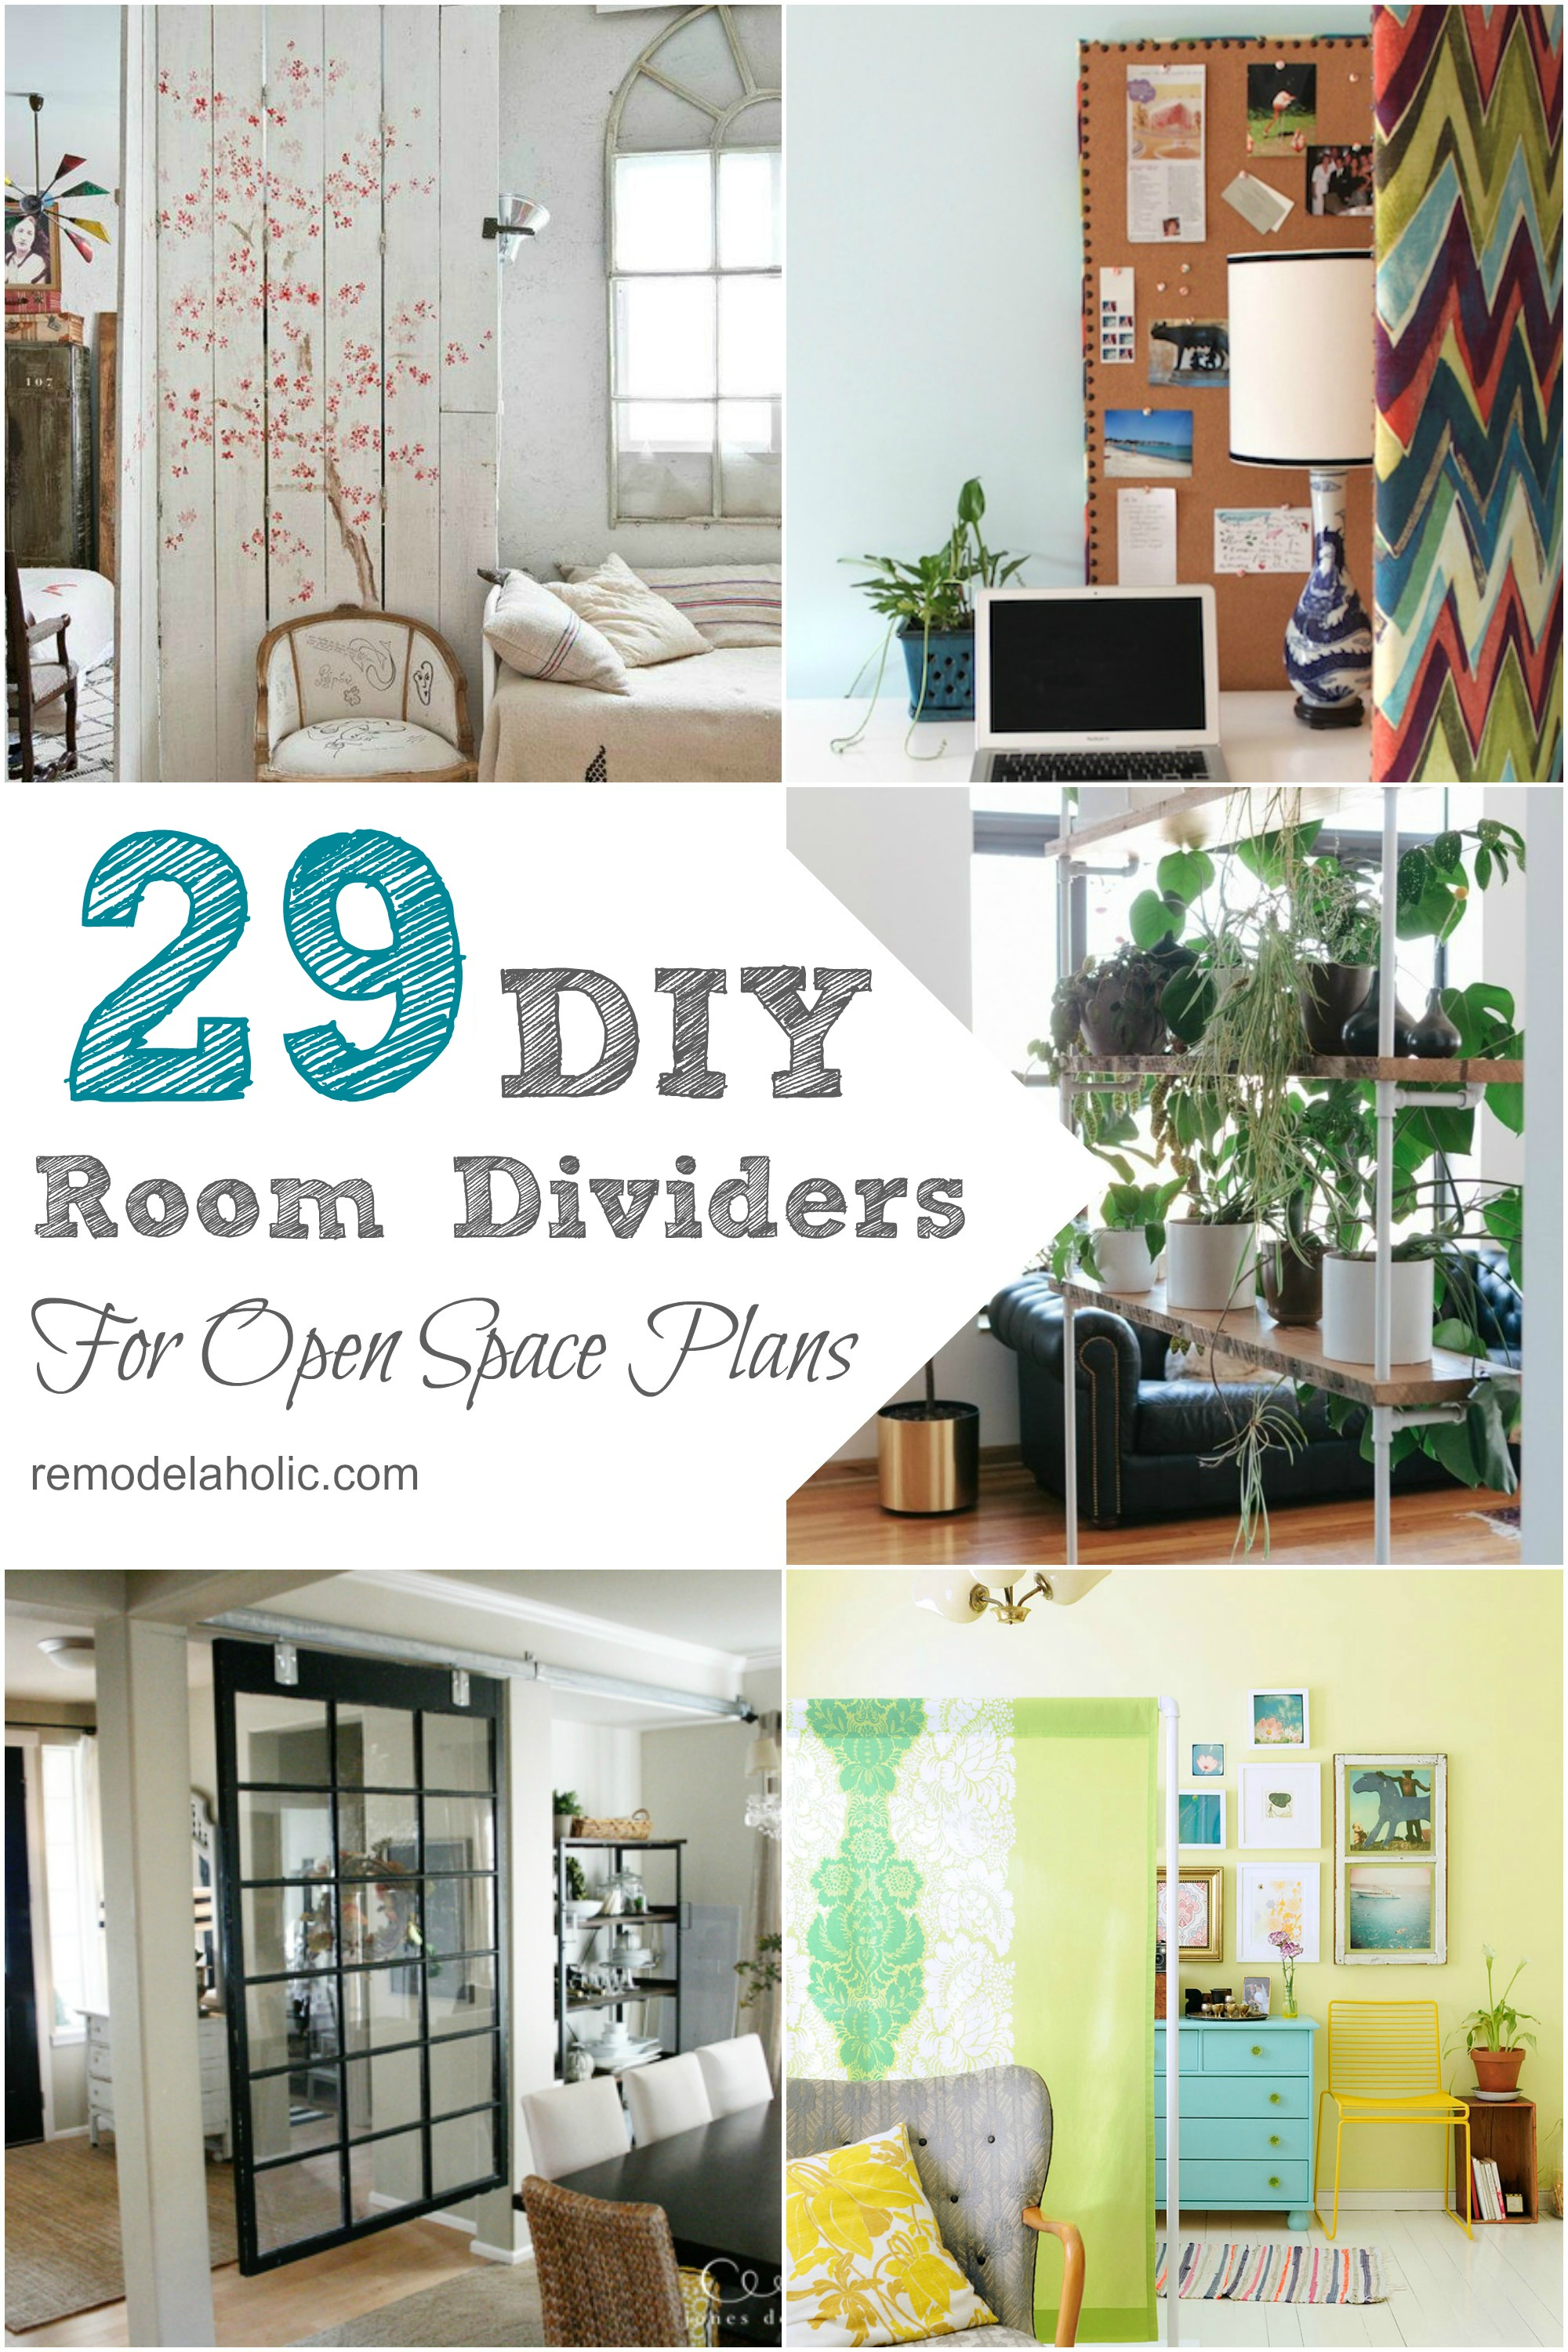 Remodelaholic 29 creative diy room dividers for open space plans - How to decorate my room divider ...